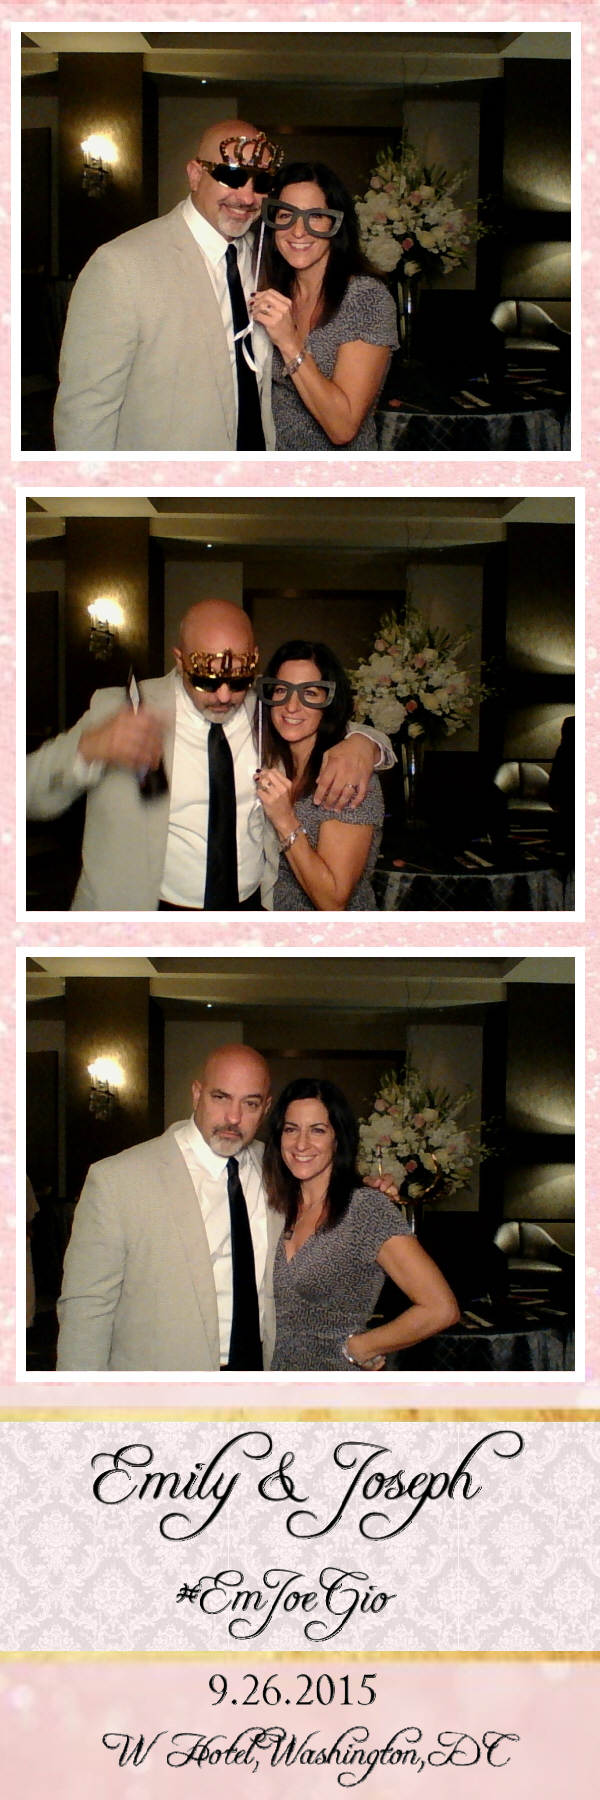 Guest House Events Photo Booth E&J (25).jpg